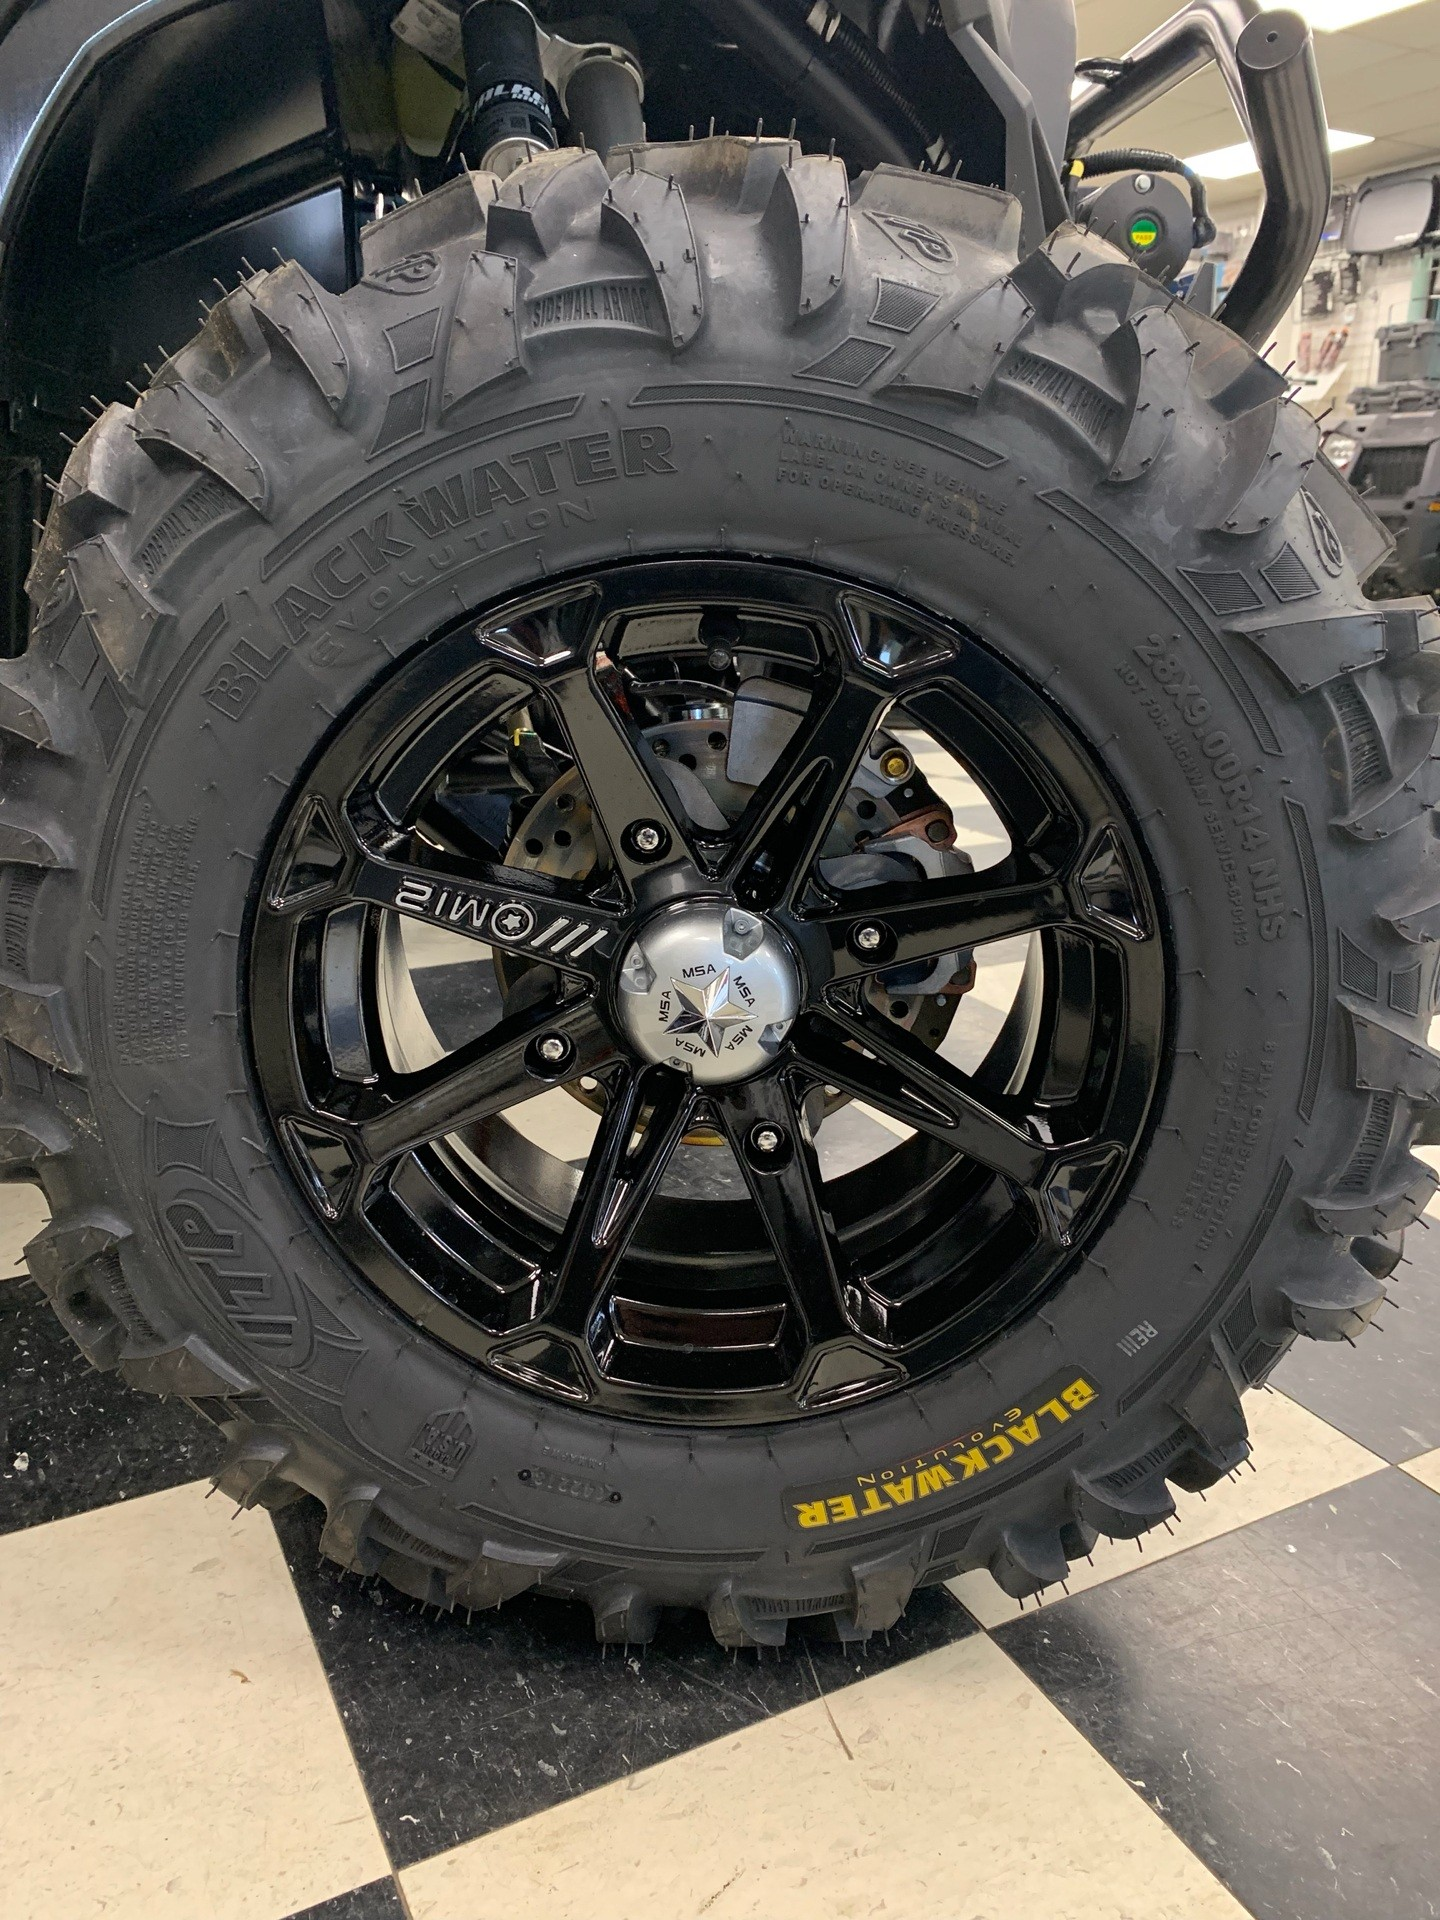 2019 Polaris RZR S 900 EPS in Milford, New Hampshire - Photo 6